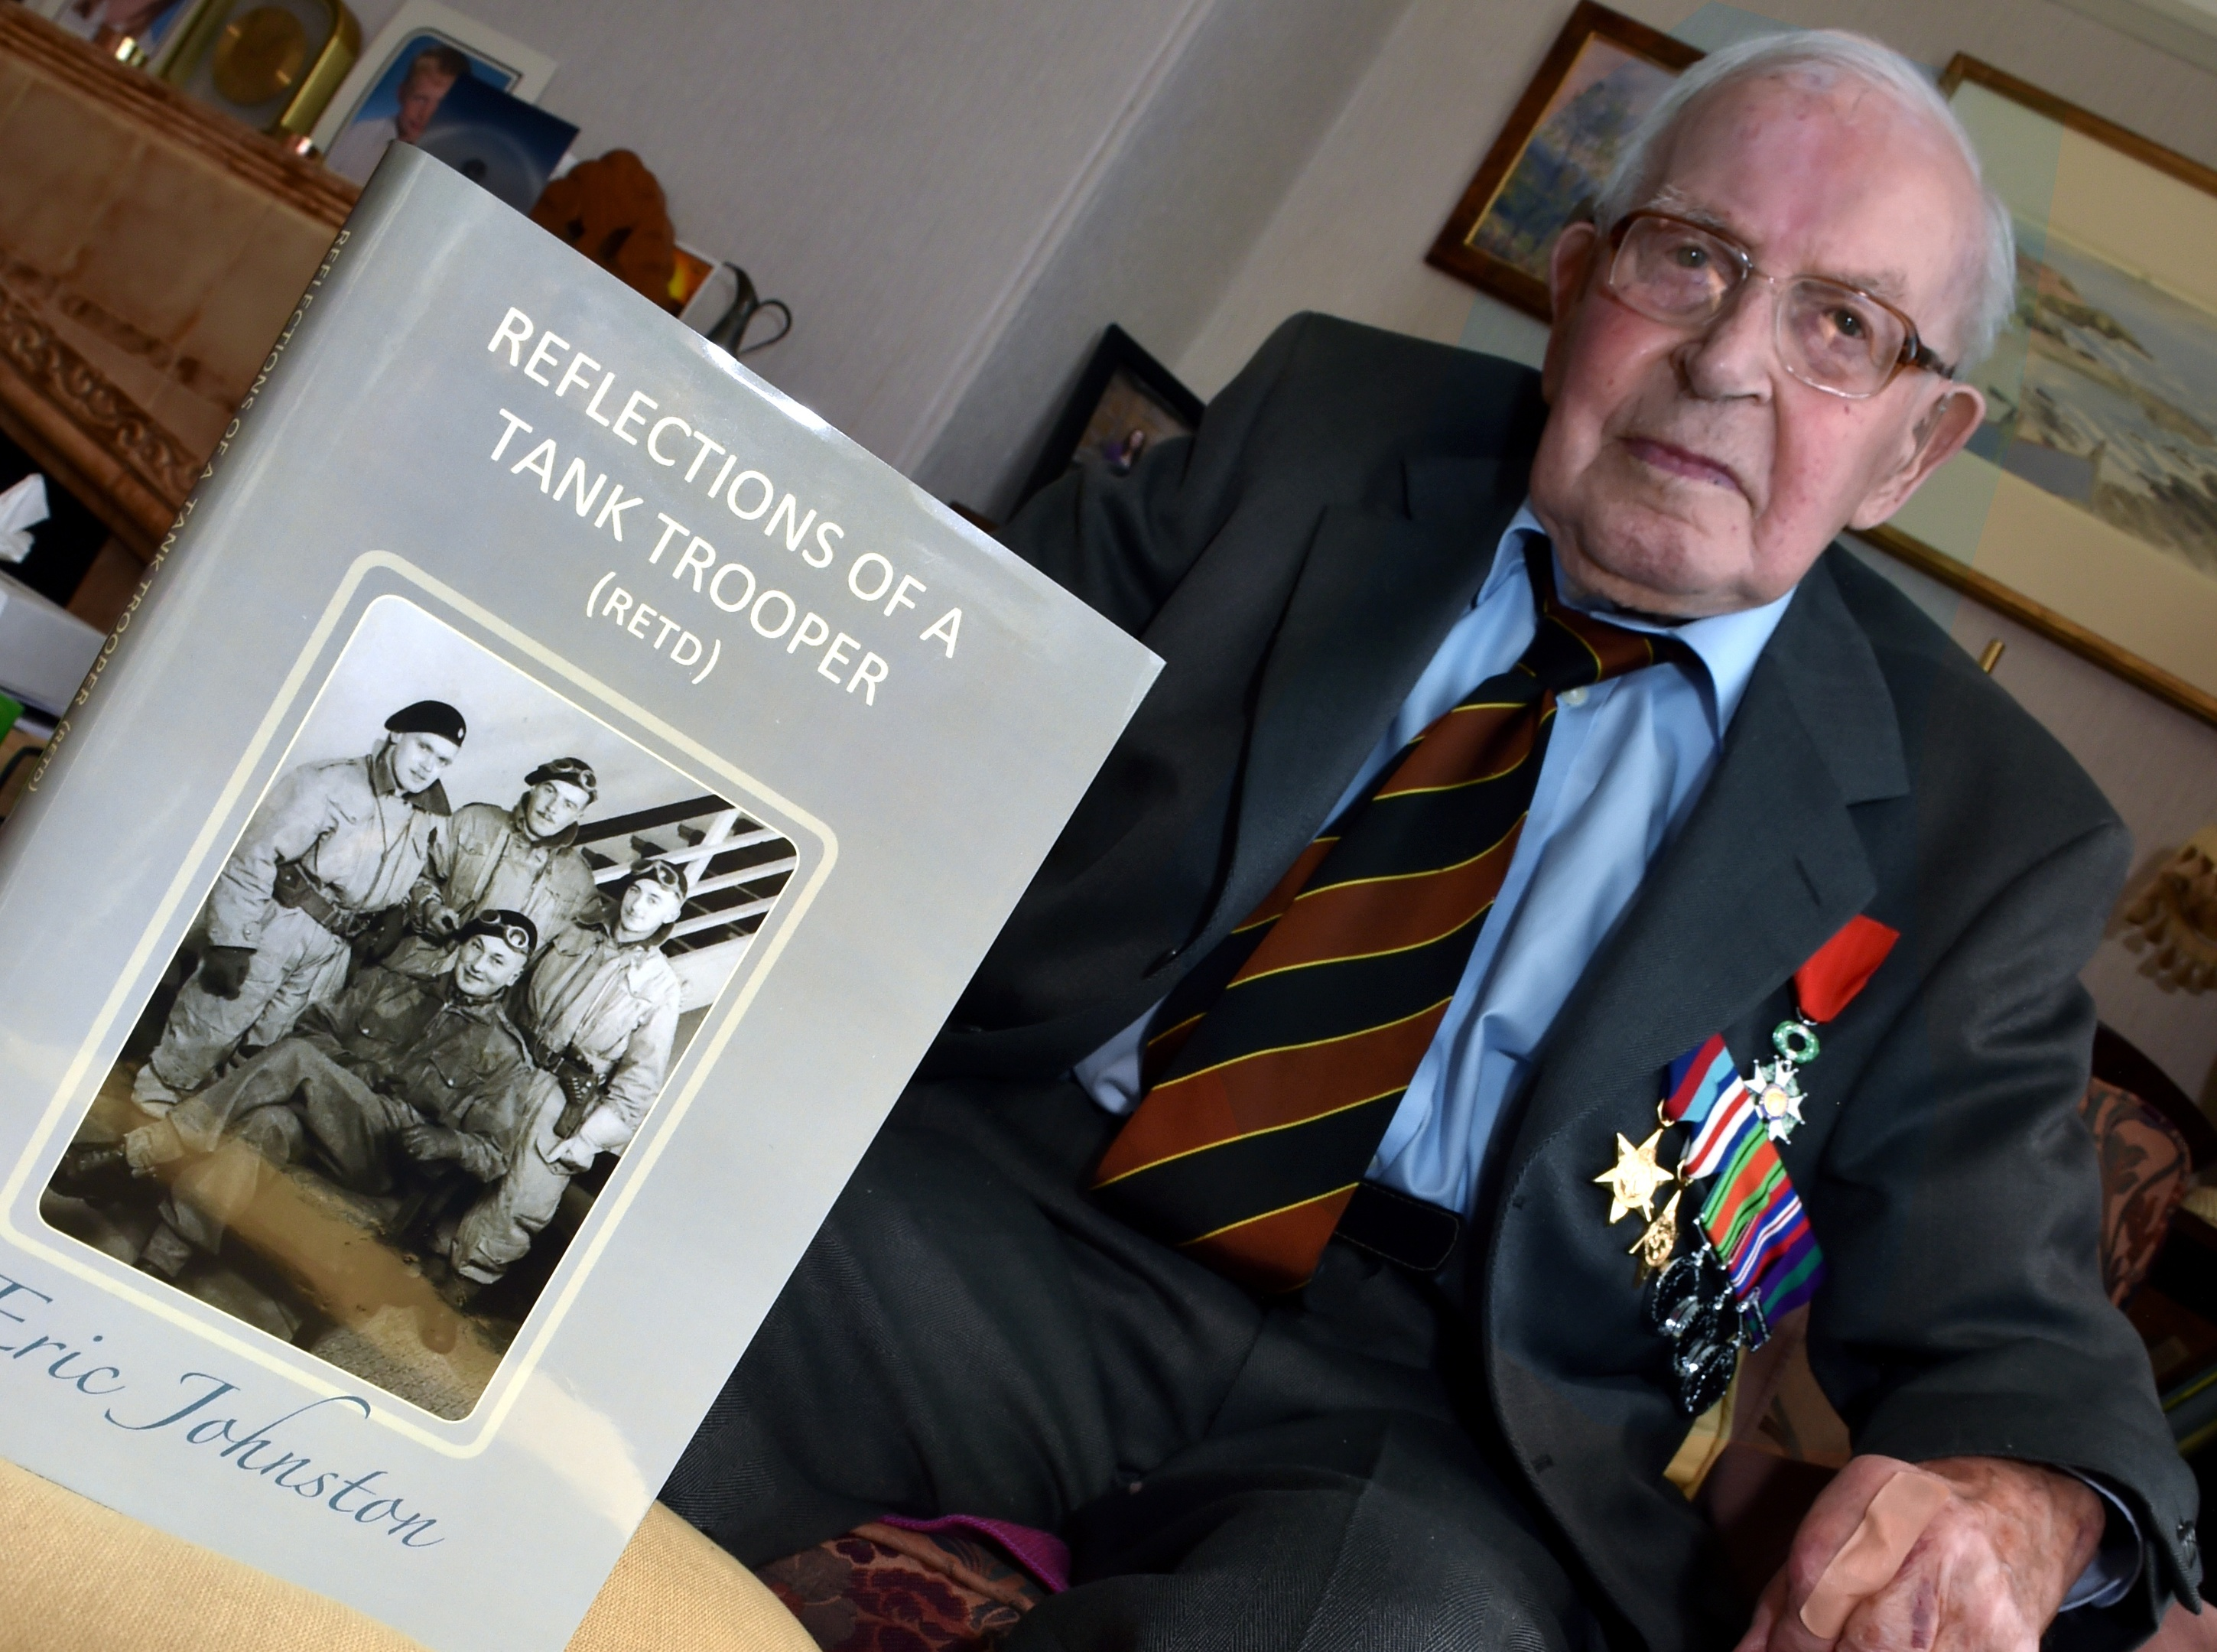 Eric Johnston, D-Day hero, has died, aged 96